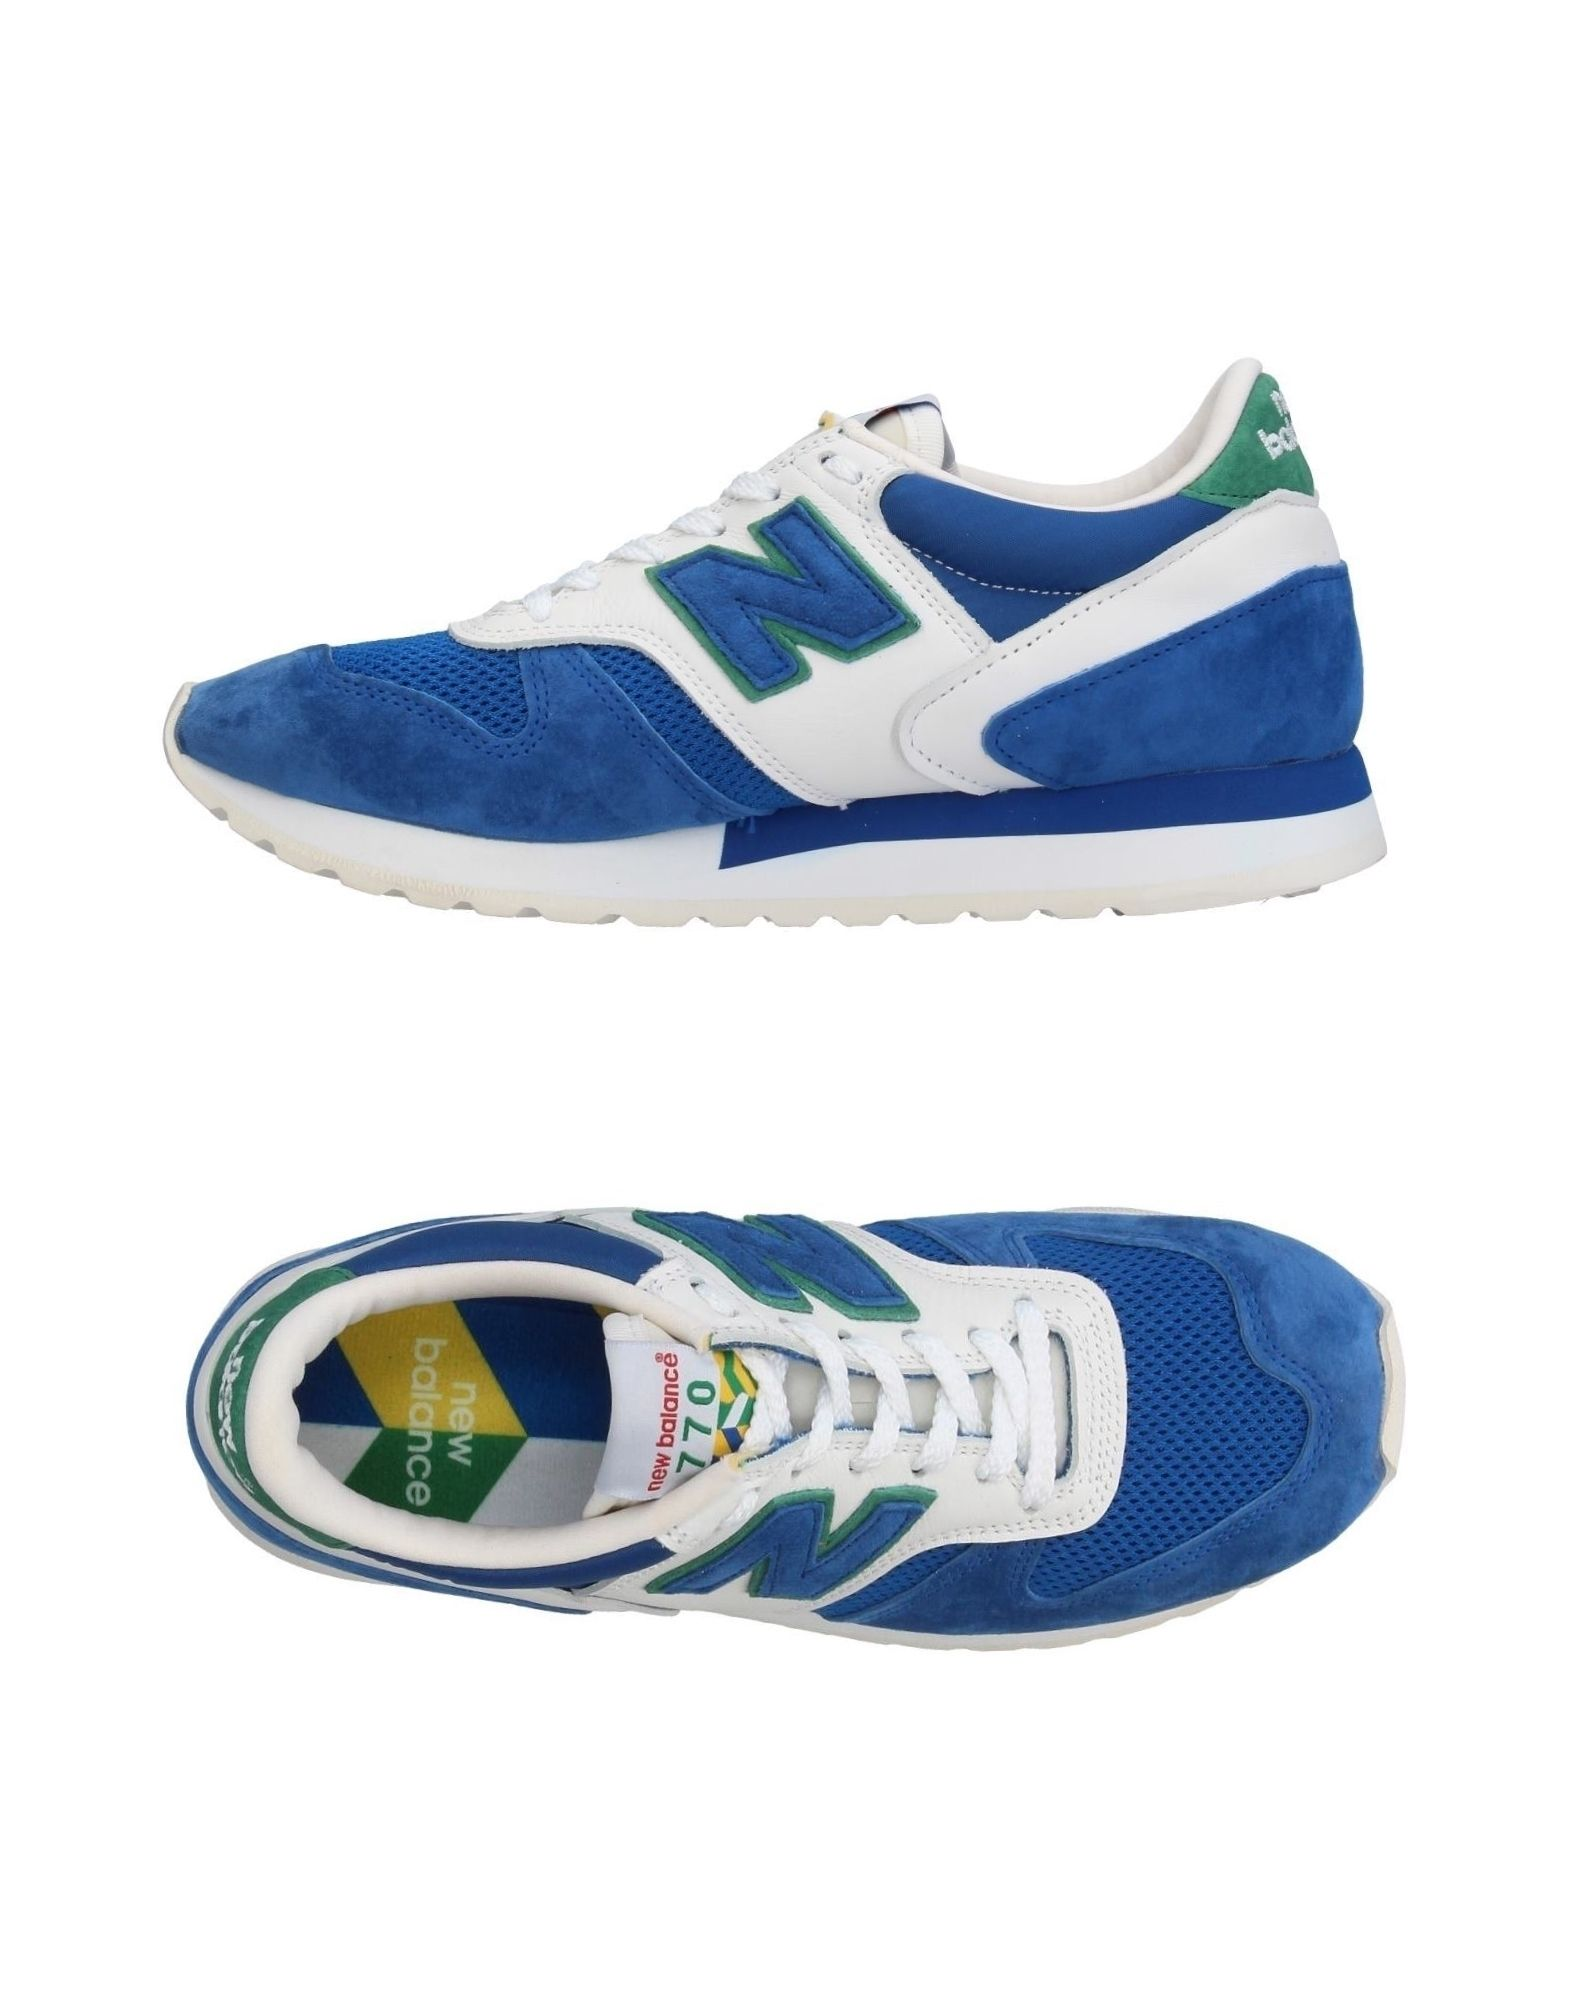 Sneakers New Balance Donna - Acquista online su